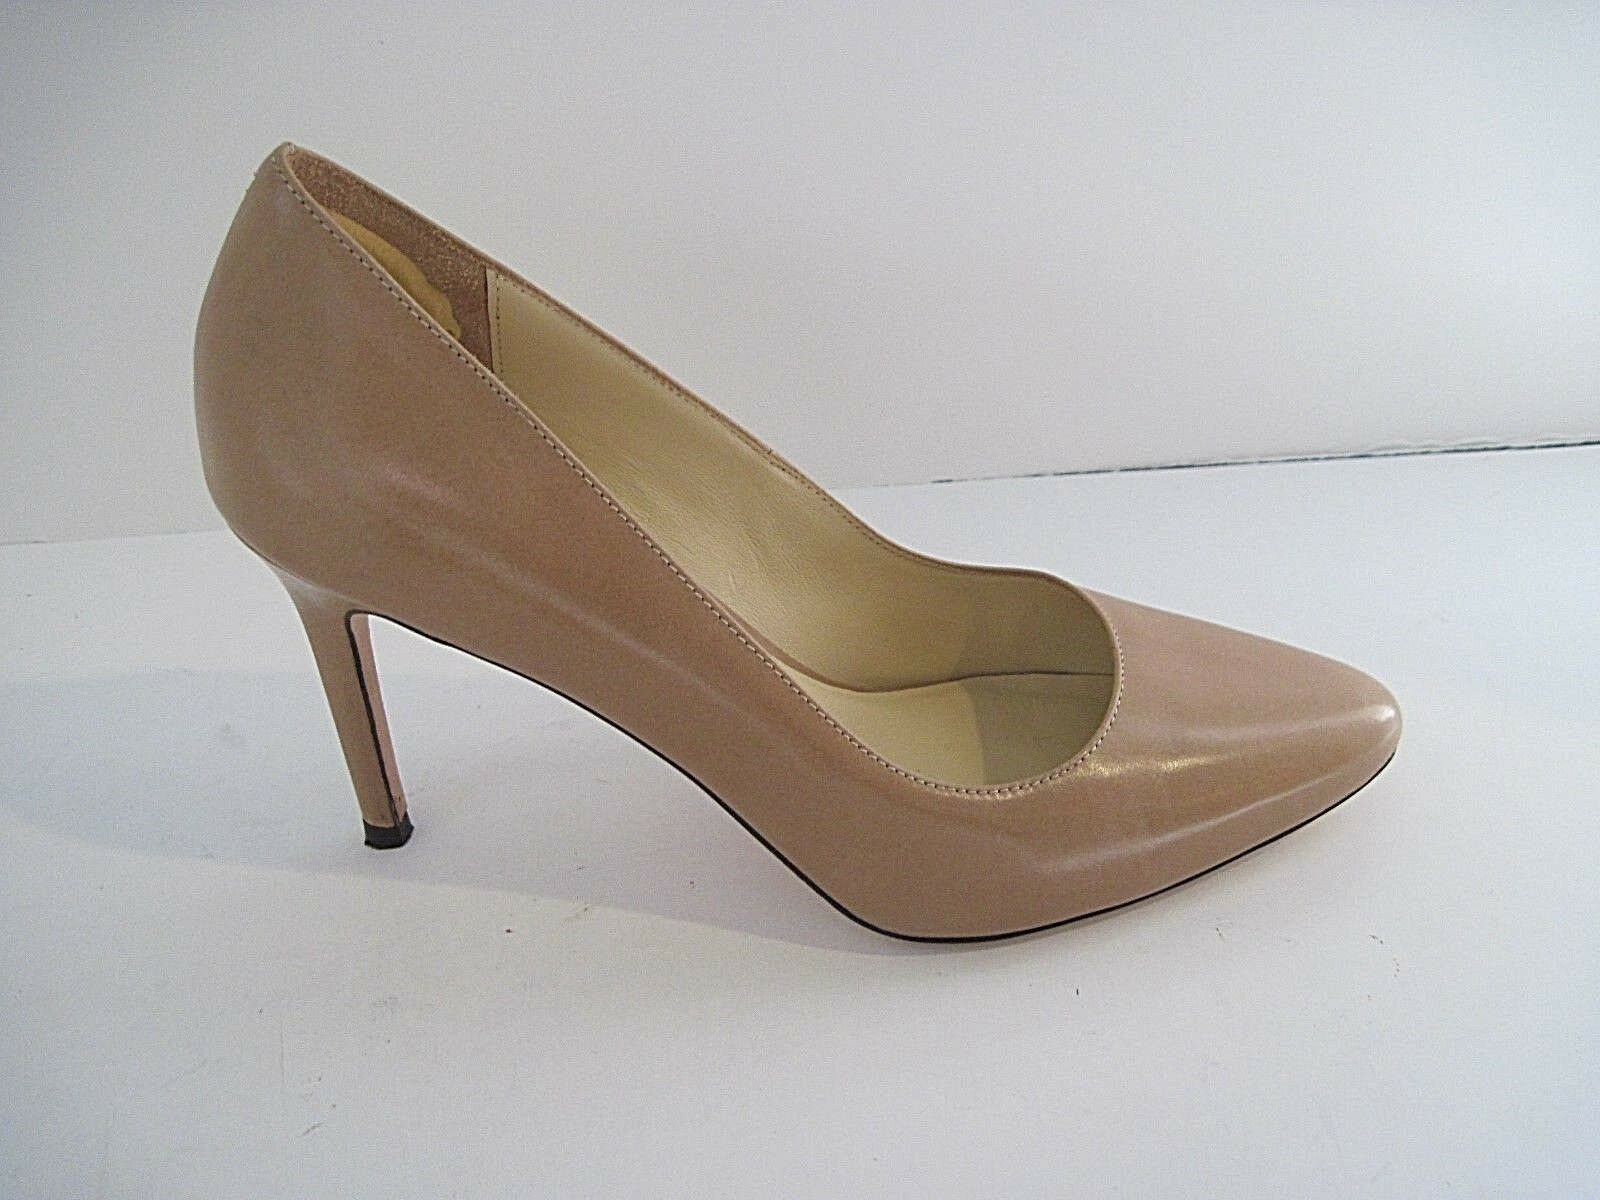 Cole Haan Grand Os Beige Leder Heels Heels Heels Pumps Größe 8 1/2B, Excellent Condition 7cac22